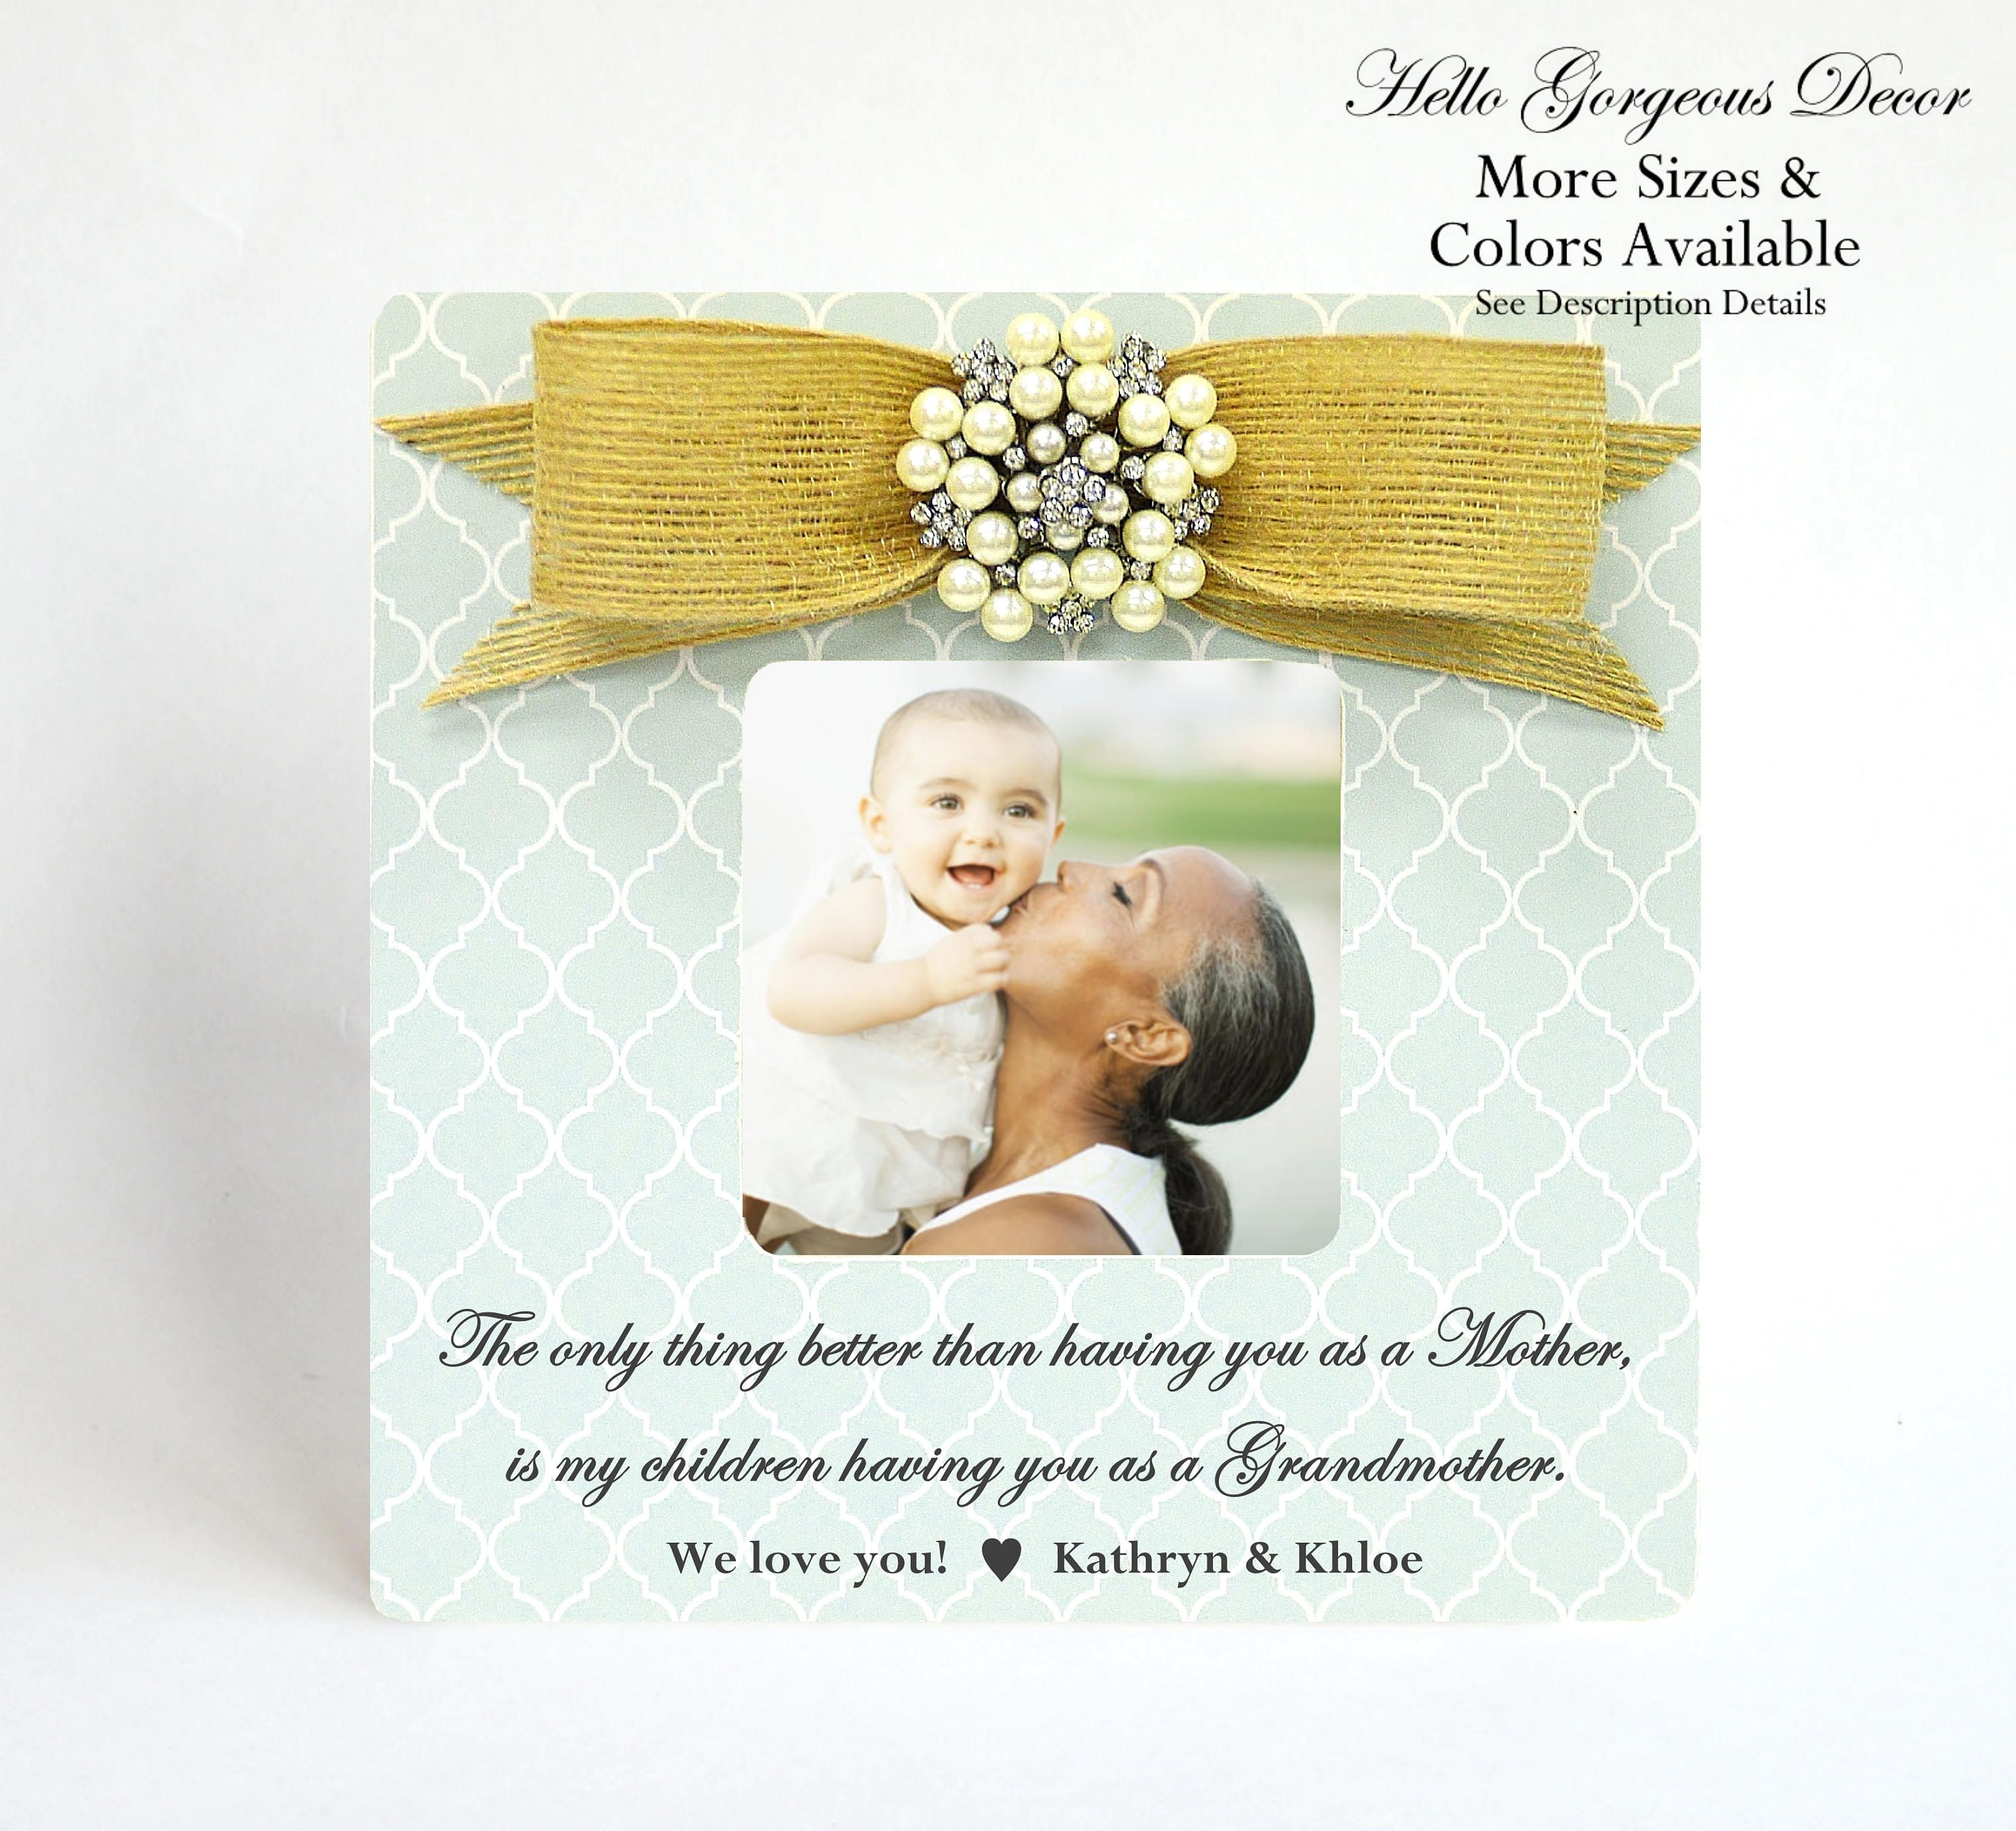 Personalized Picture Frame Mom Mother/'s Day Grandma Grandmother Gift Grandparent Gift The only thing better than having you as a Mother